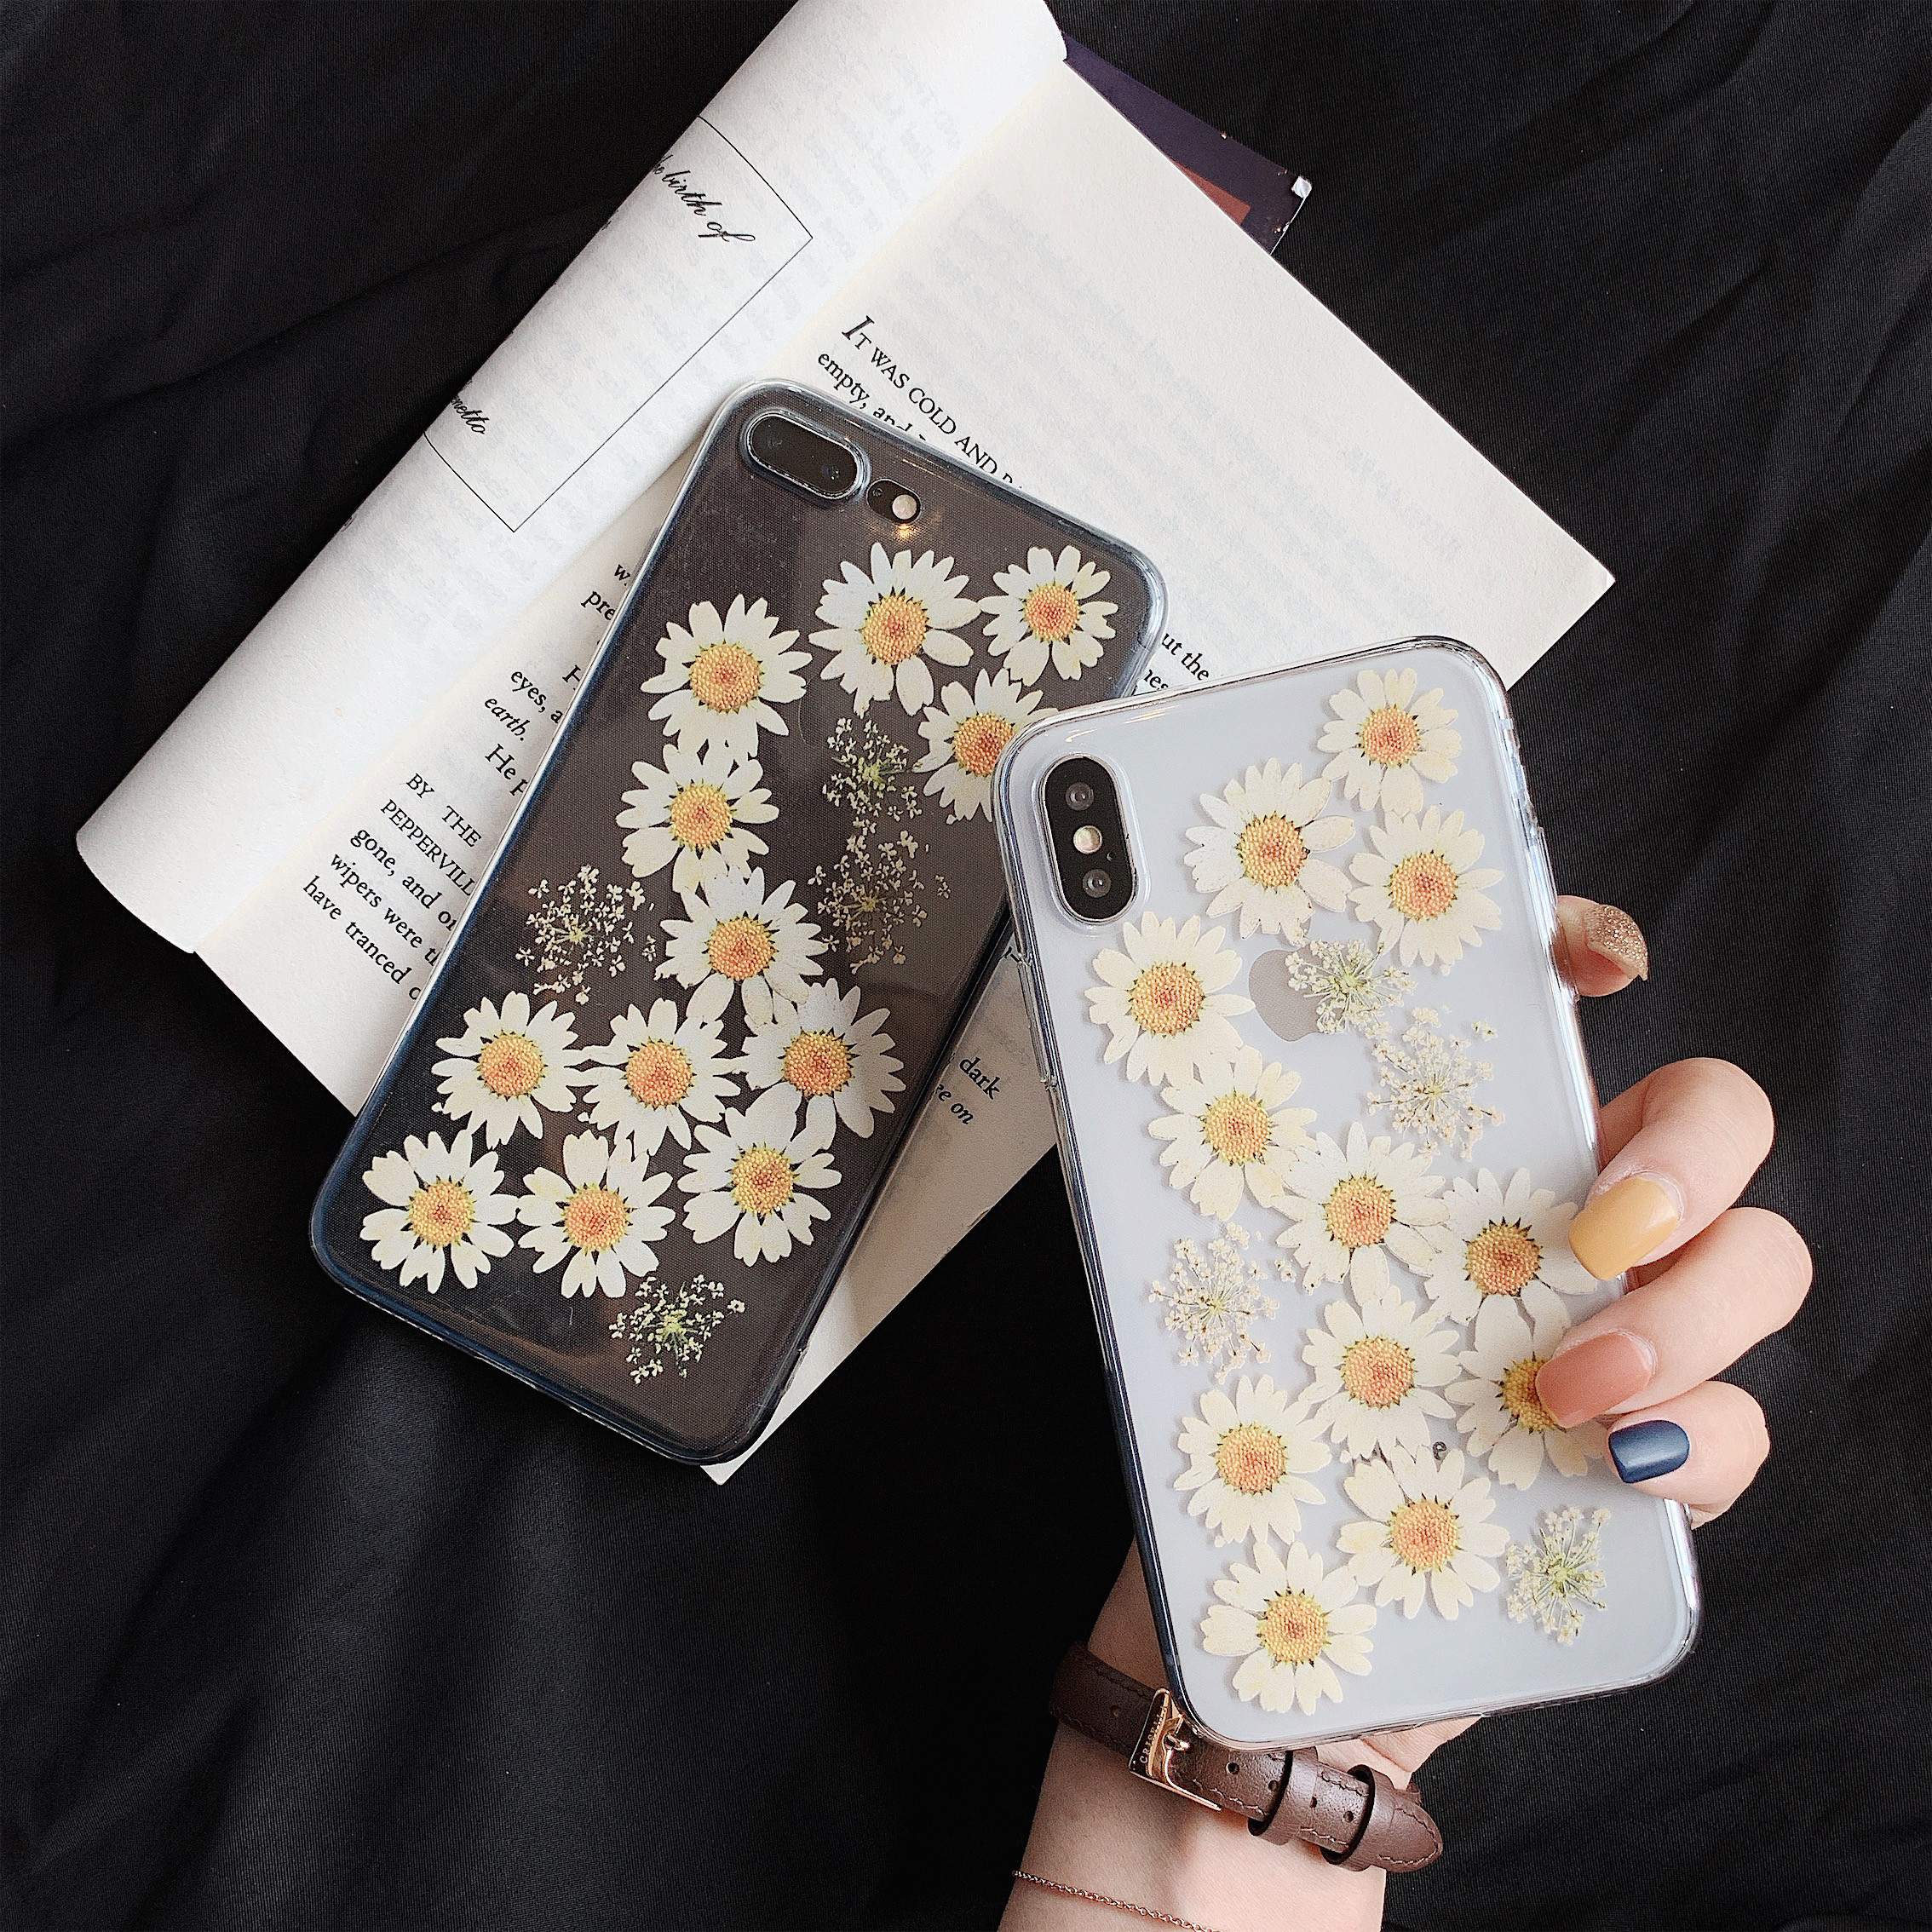 3D Flower <font><b>Shockproof</b></font> <font><b>Case</b></font> on for <font><b>Huawei</b></font> P30 Lite Nova 4E Y9 <font><b>2019</b></font> <font><b>Y7</b></font> Prime Y9 2018 Honor Play 6C V10 5A 6A 7A Silicone TPU Cover image